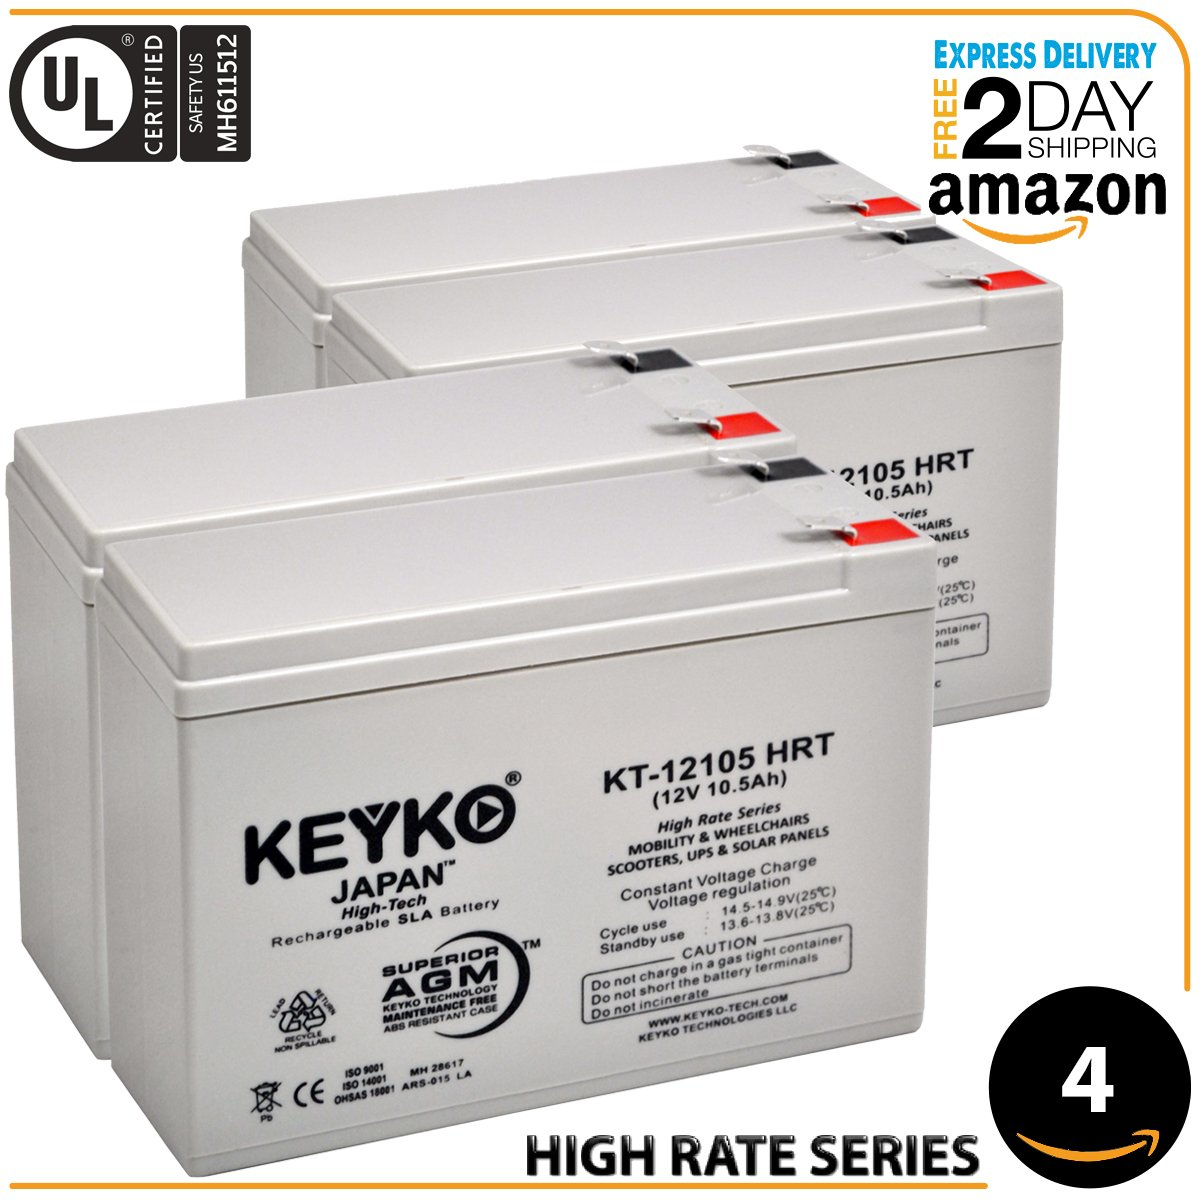 KEYKO Genuine 12V 10.5Ah - 4 Pack Battery - Replace 10Ah - Fresh & REAL 10.5 Amp DEEP CYCLE AGM/SLA Designed for Electric Scooters & Mobility - F2 Terminal by KEYKO